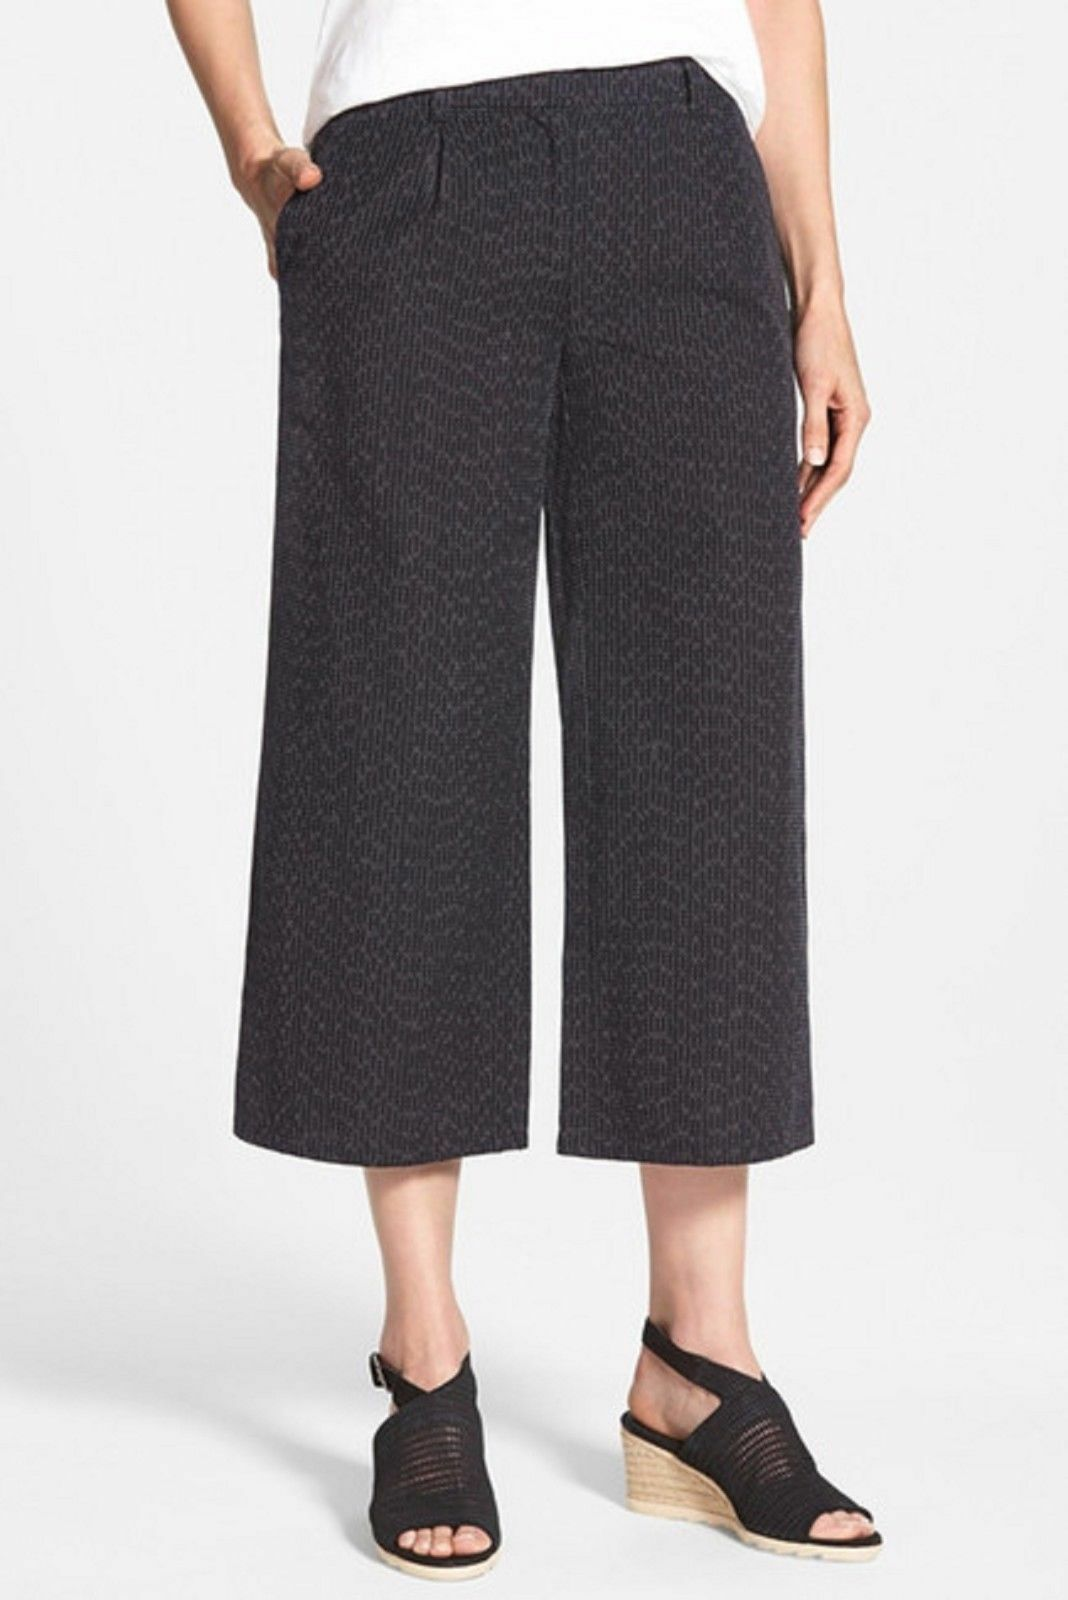 NWT Eileen Fisher Wide Leg Organic Cotton Crop Pants.SZ  M